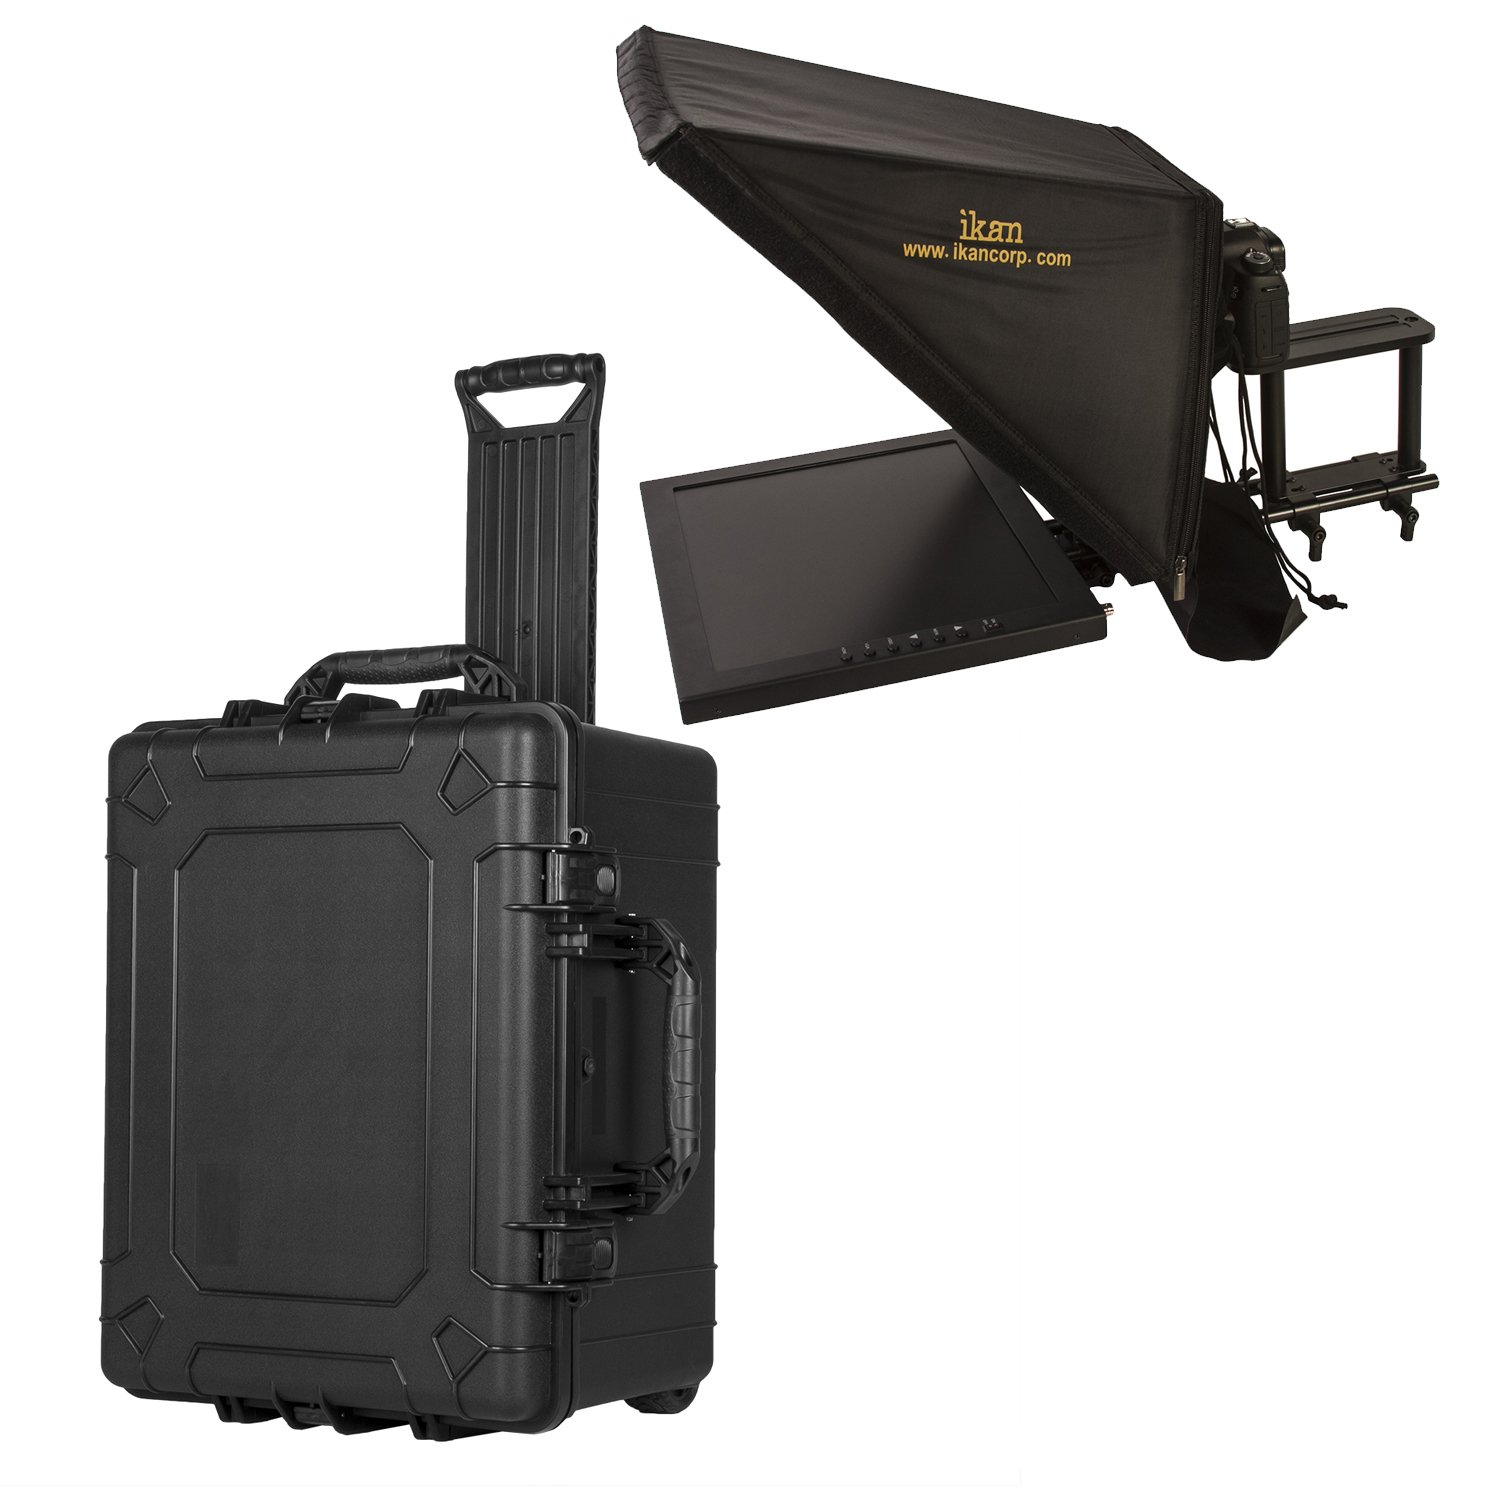 Ikan 17-inch Rod Based Location/Studio Teleprompter w/Rolling Case, Adjustable Glass Frame, Easy to Assemble, Extreme Clarity (PT3700-TK) - Black by Ikan